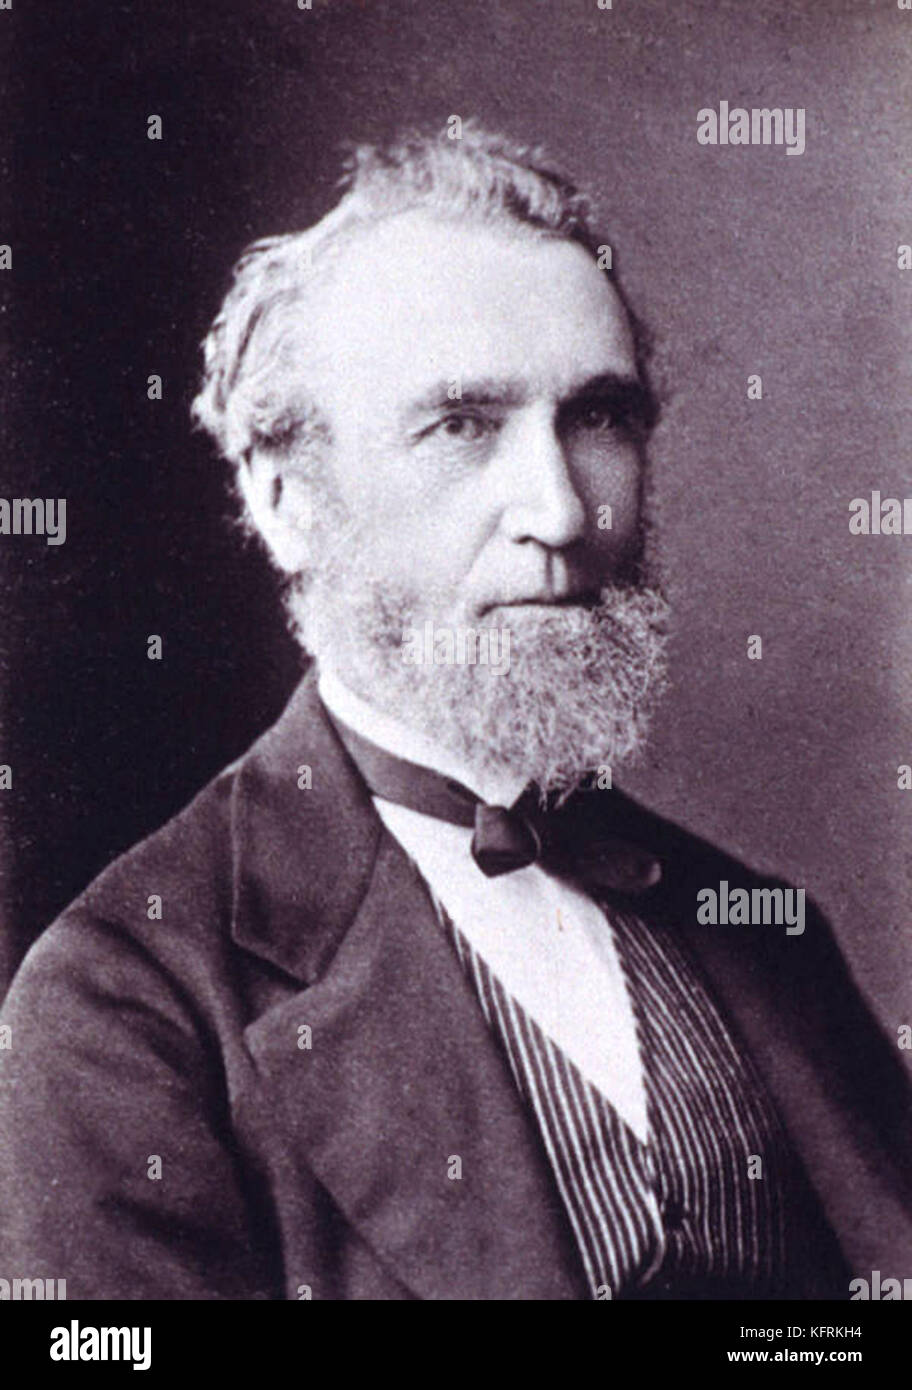 Frederick Maitland Innes, Premier of Tasmania from 4 November 1872 to 4 August 1873 - Stock Image